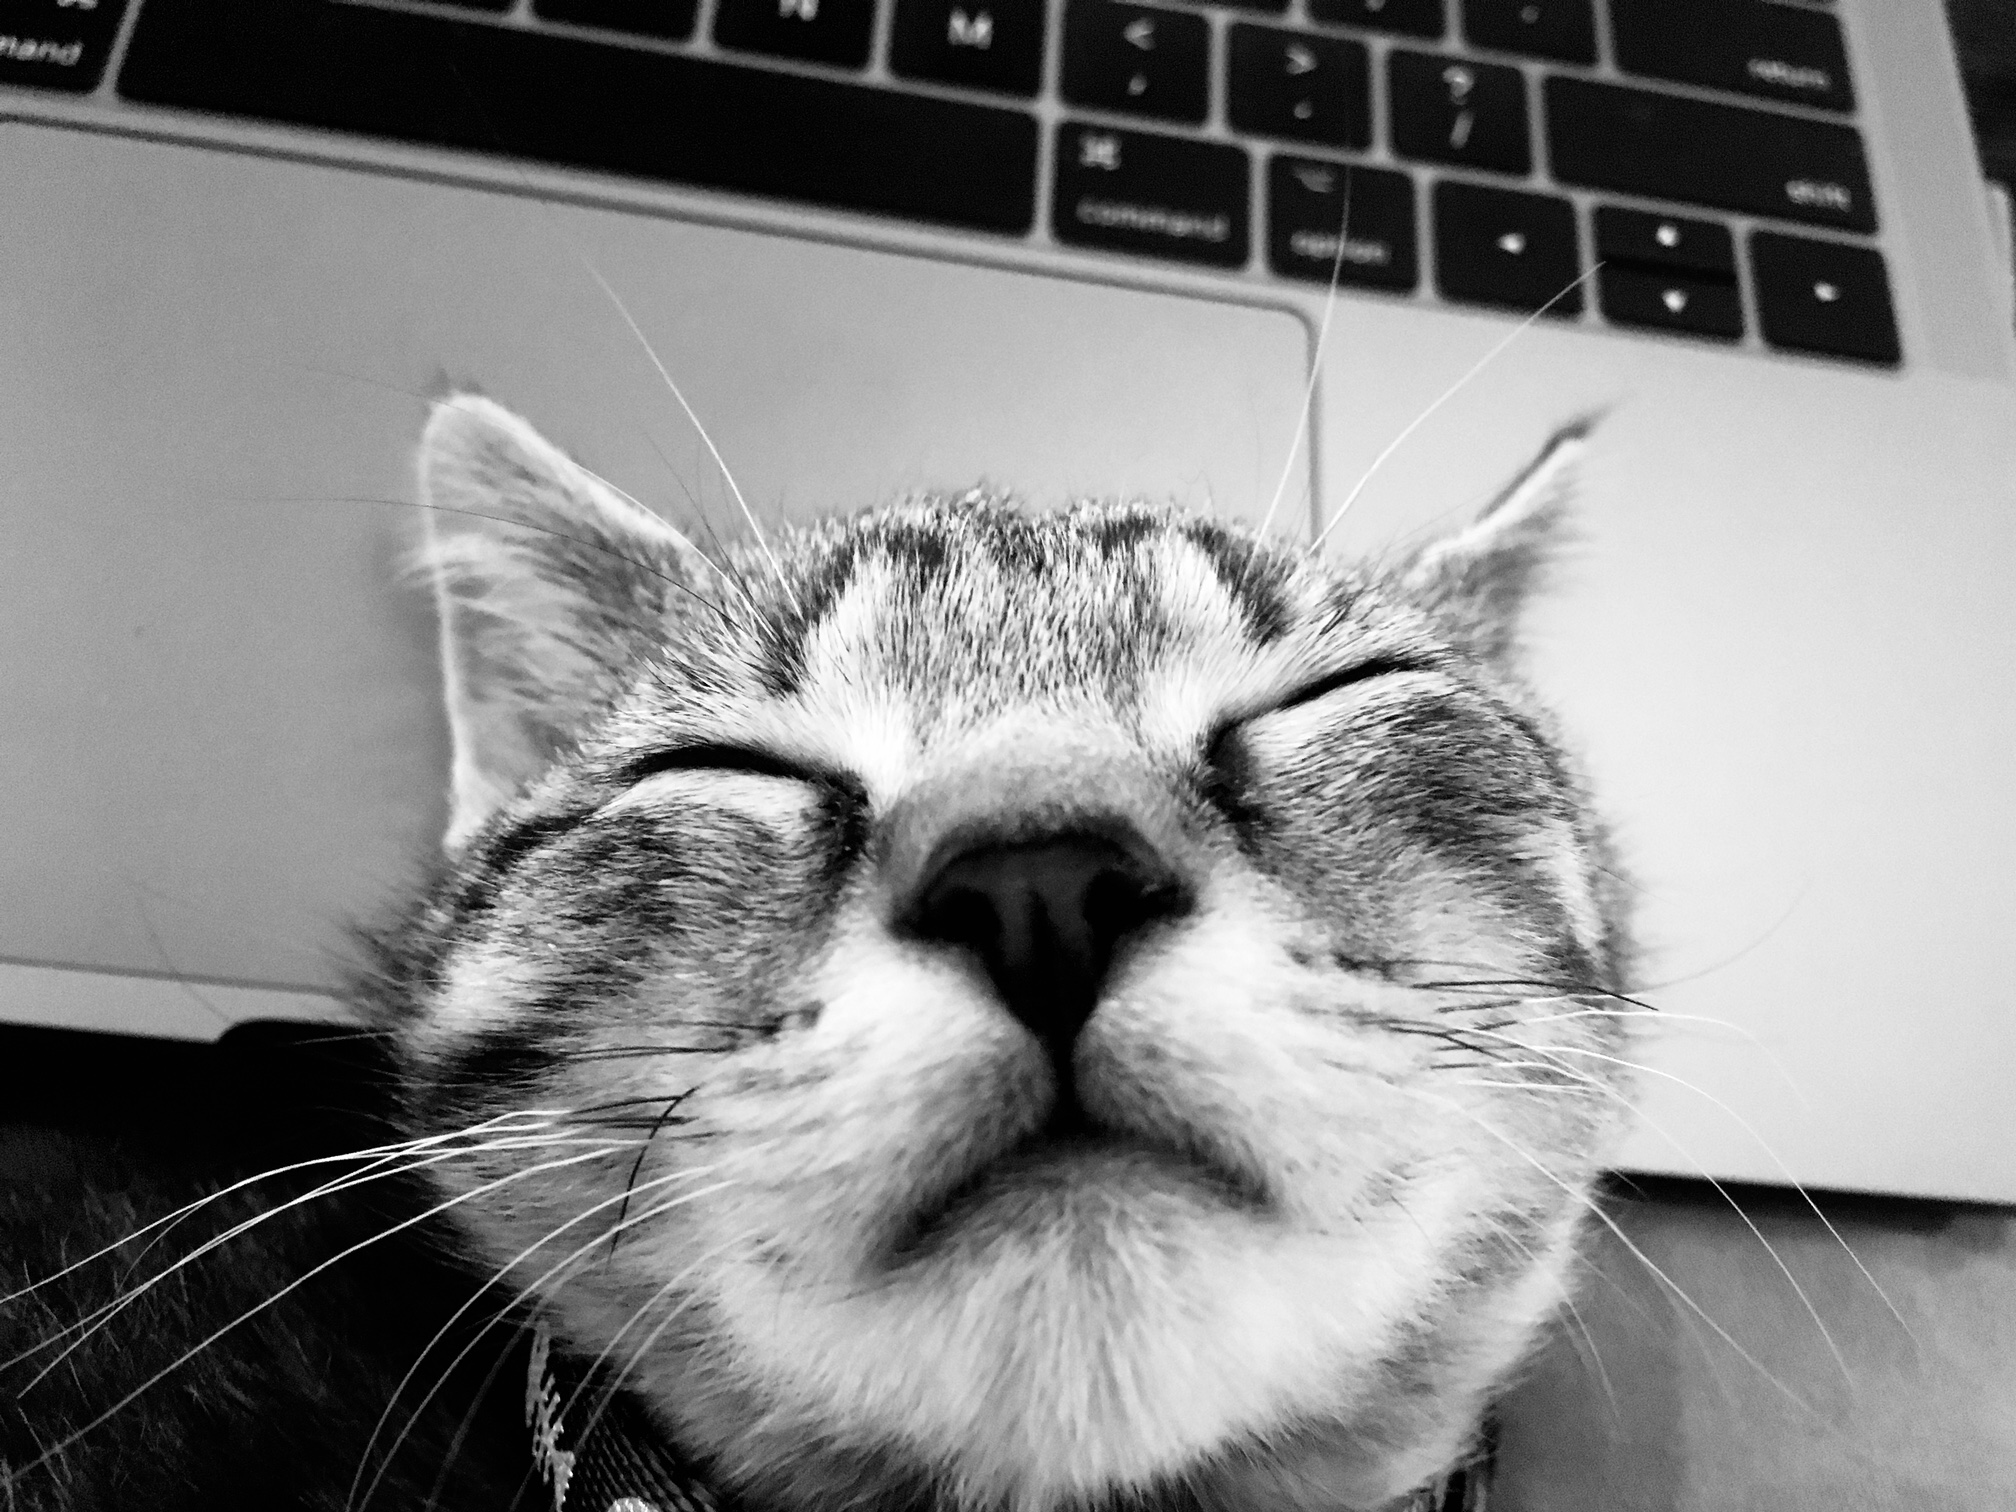 Sleeping Cat on a computer keyboard